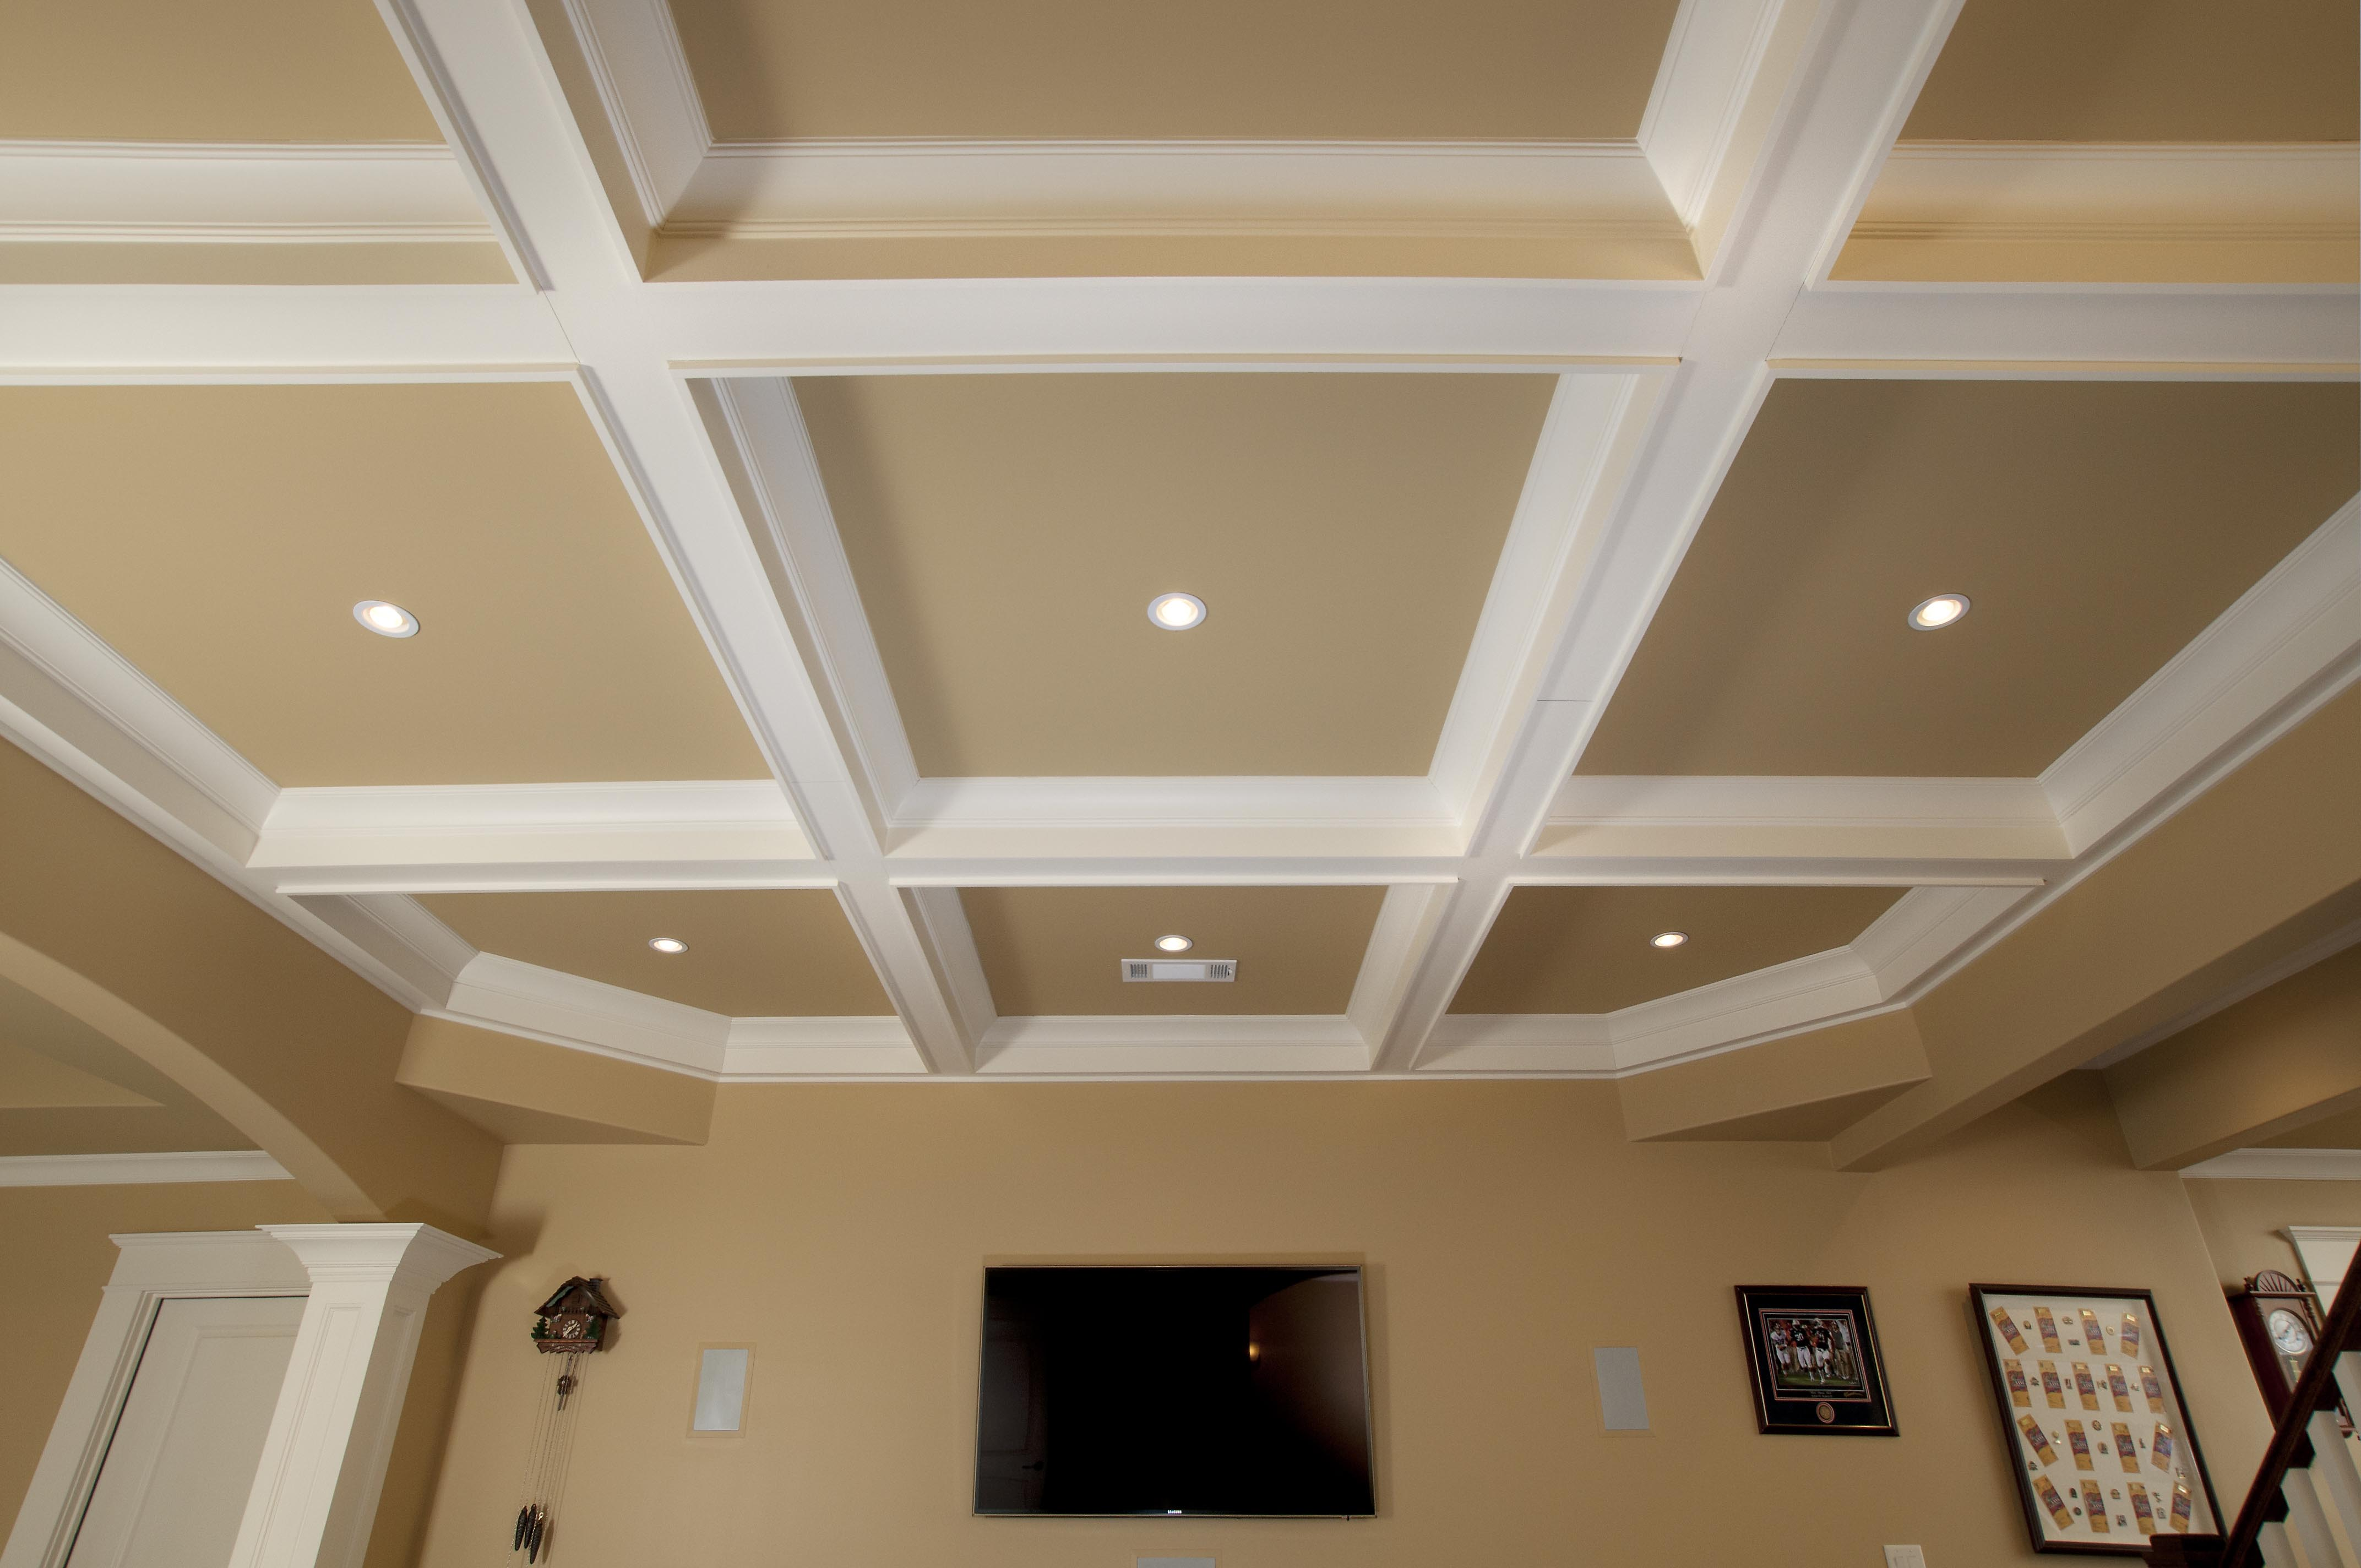 stunning coffered ceiling in white and tan with lights combained with cream wall plus LCD TV on wall